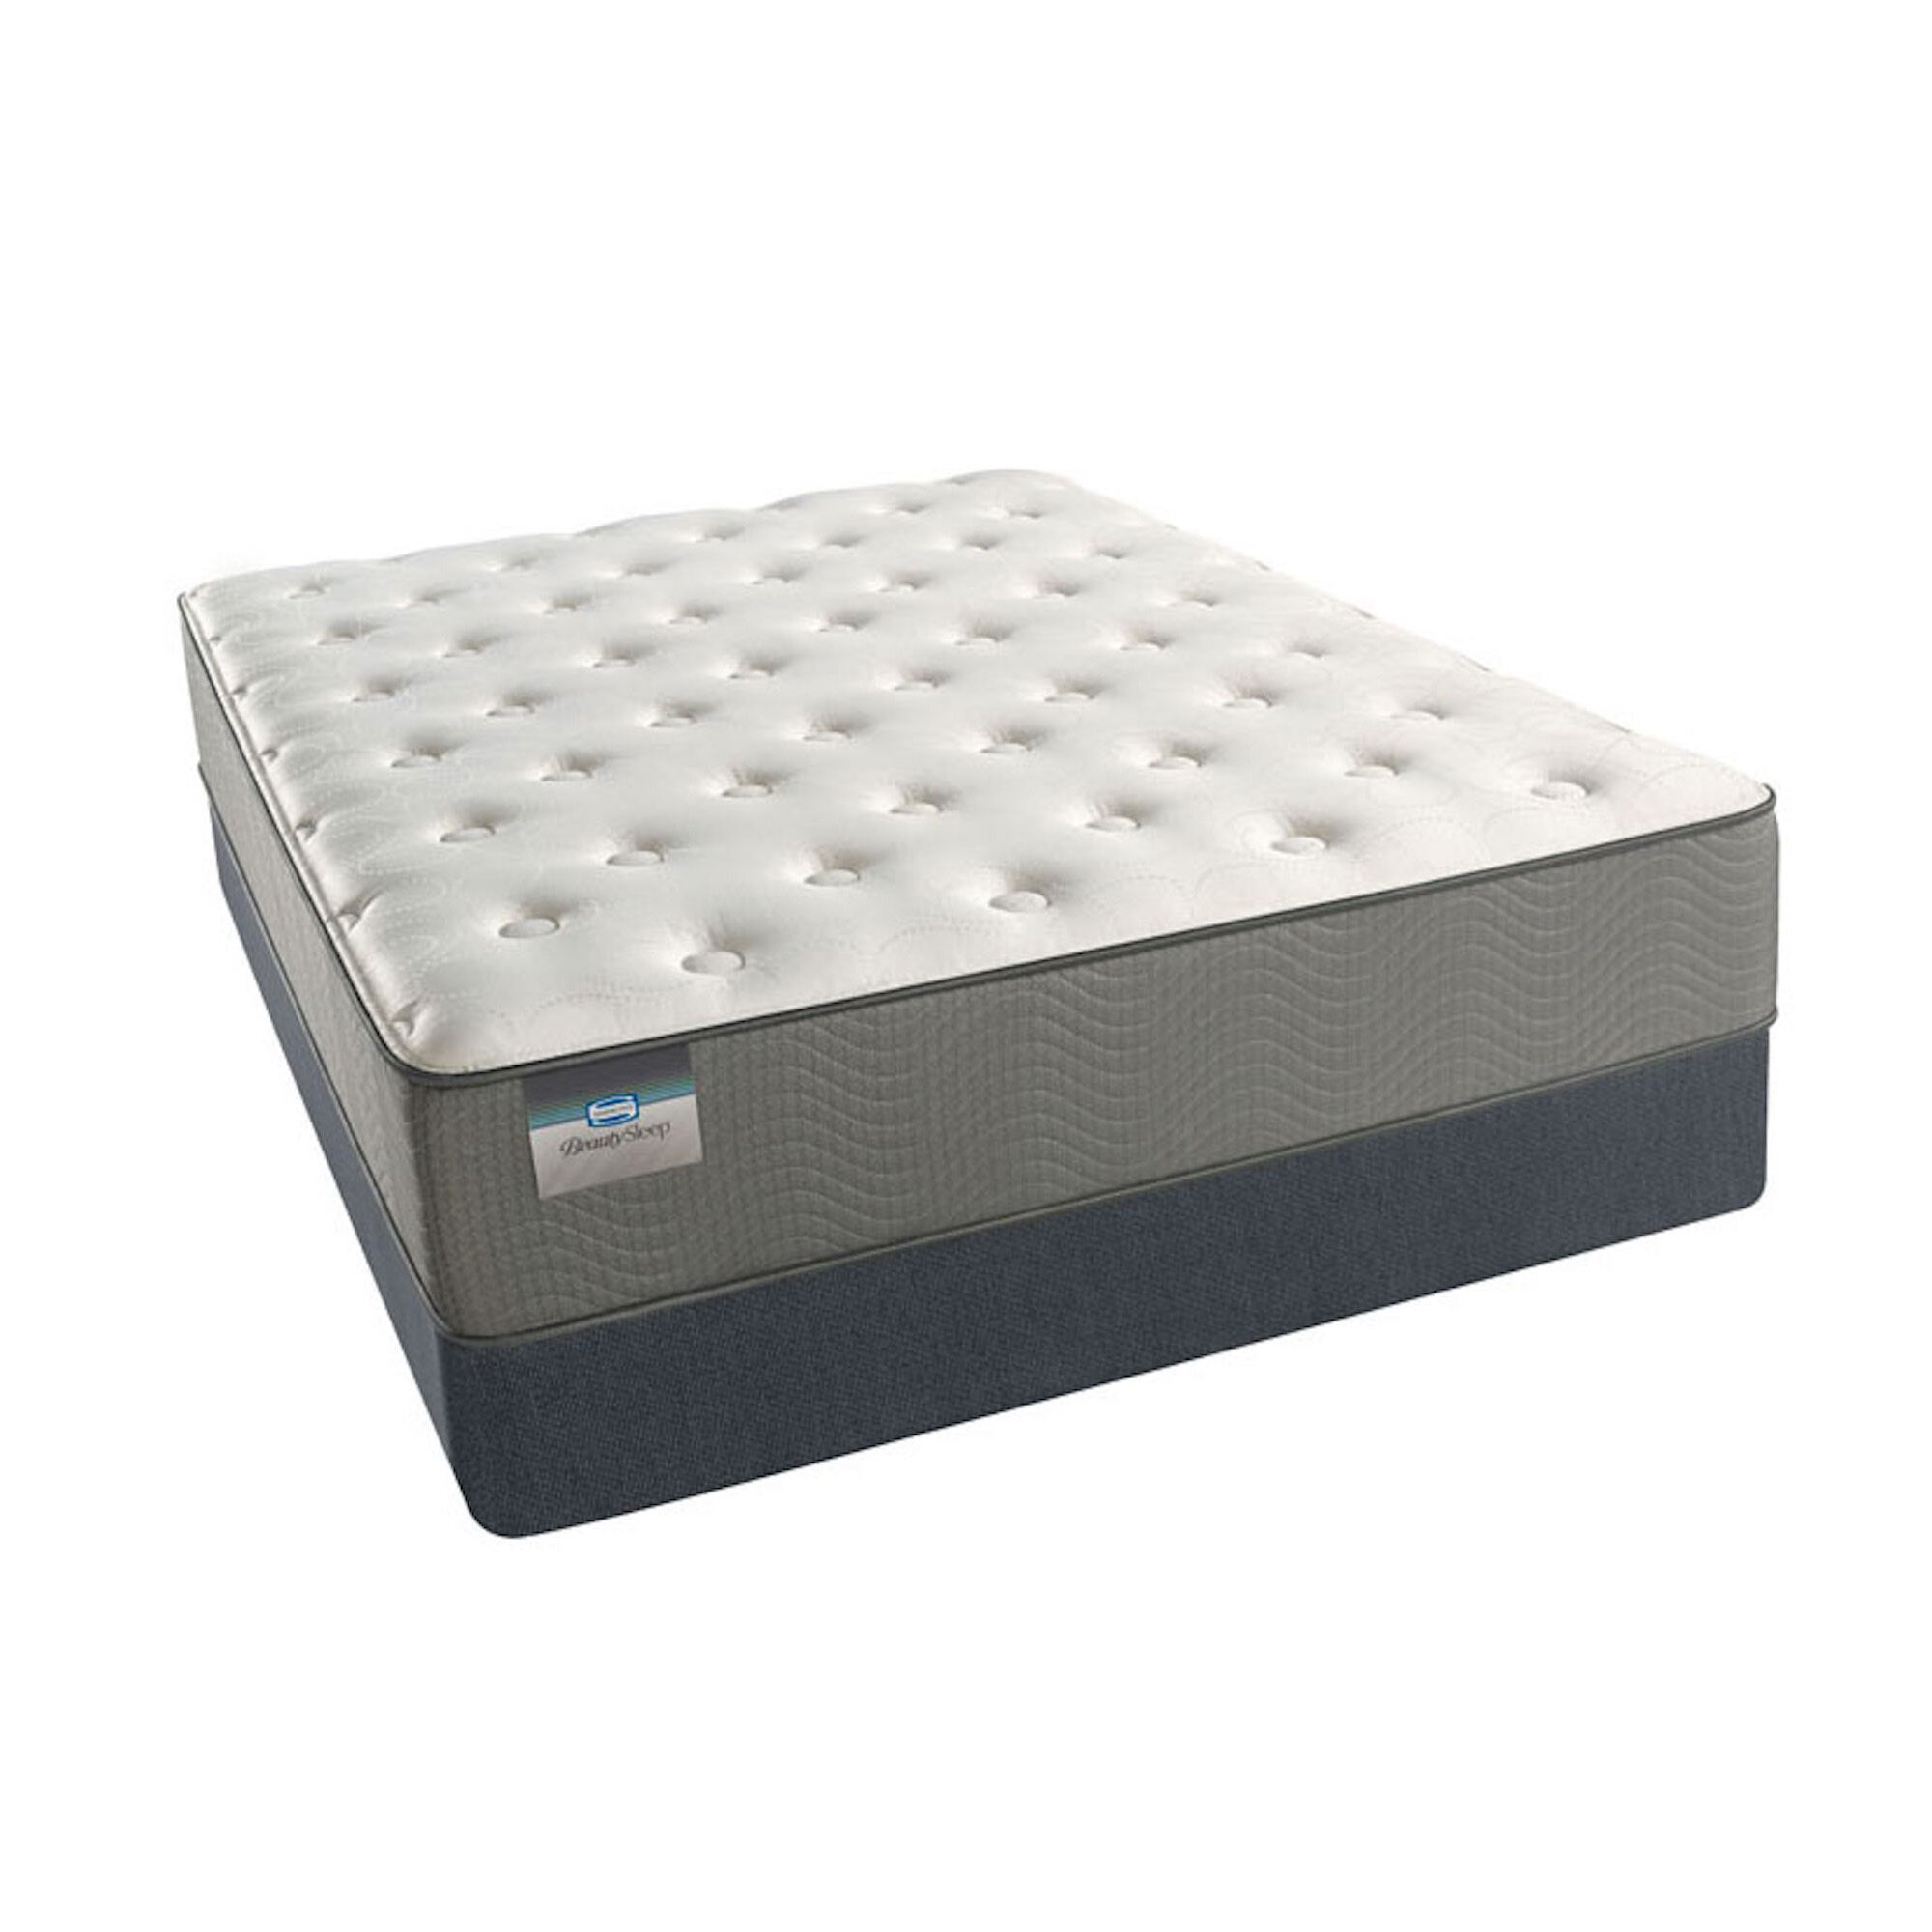 Mattress and Bed Set Rental Aarons